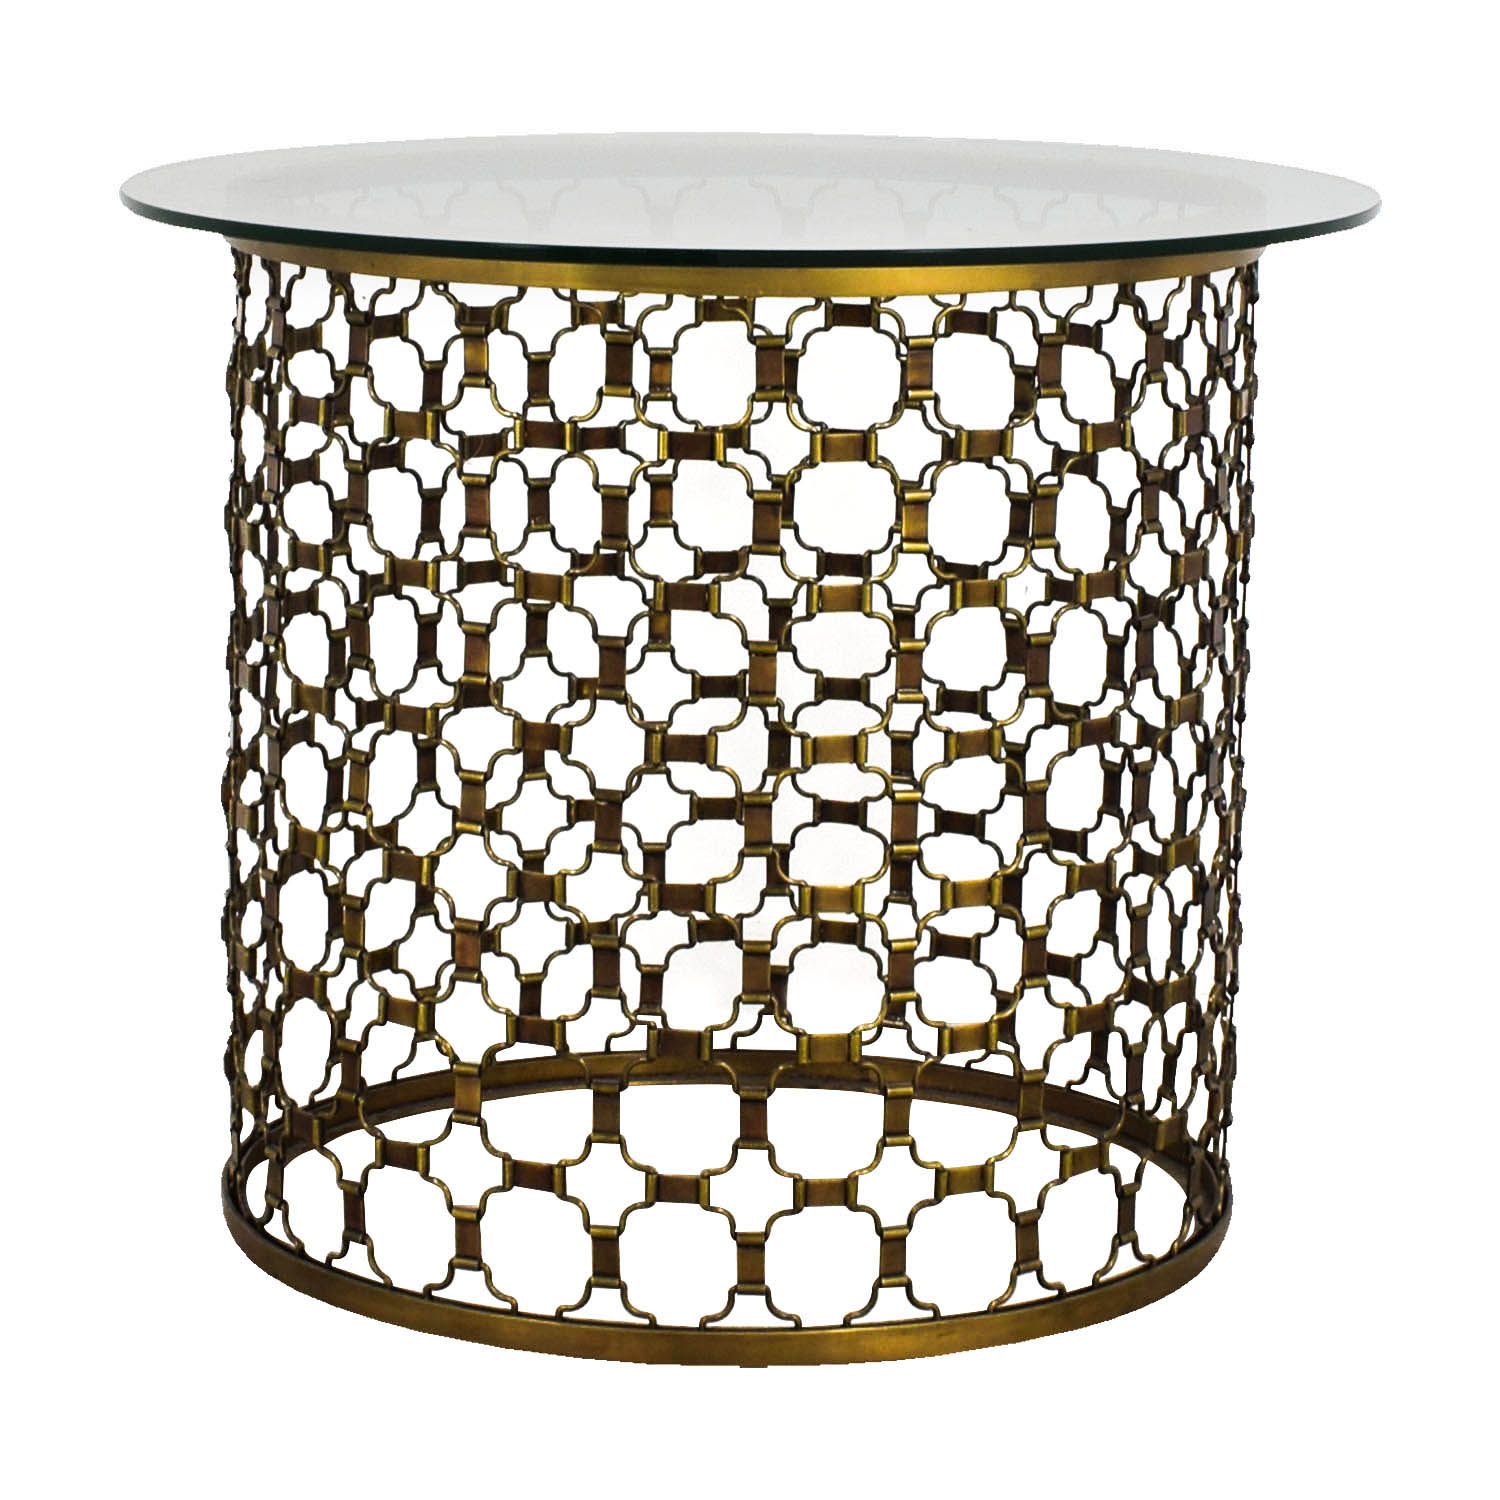 Naomi Naomi Round Brass and Glass Dining Table nyc